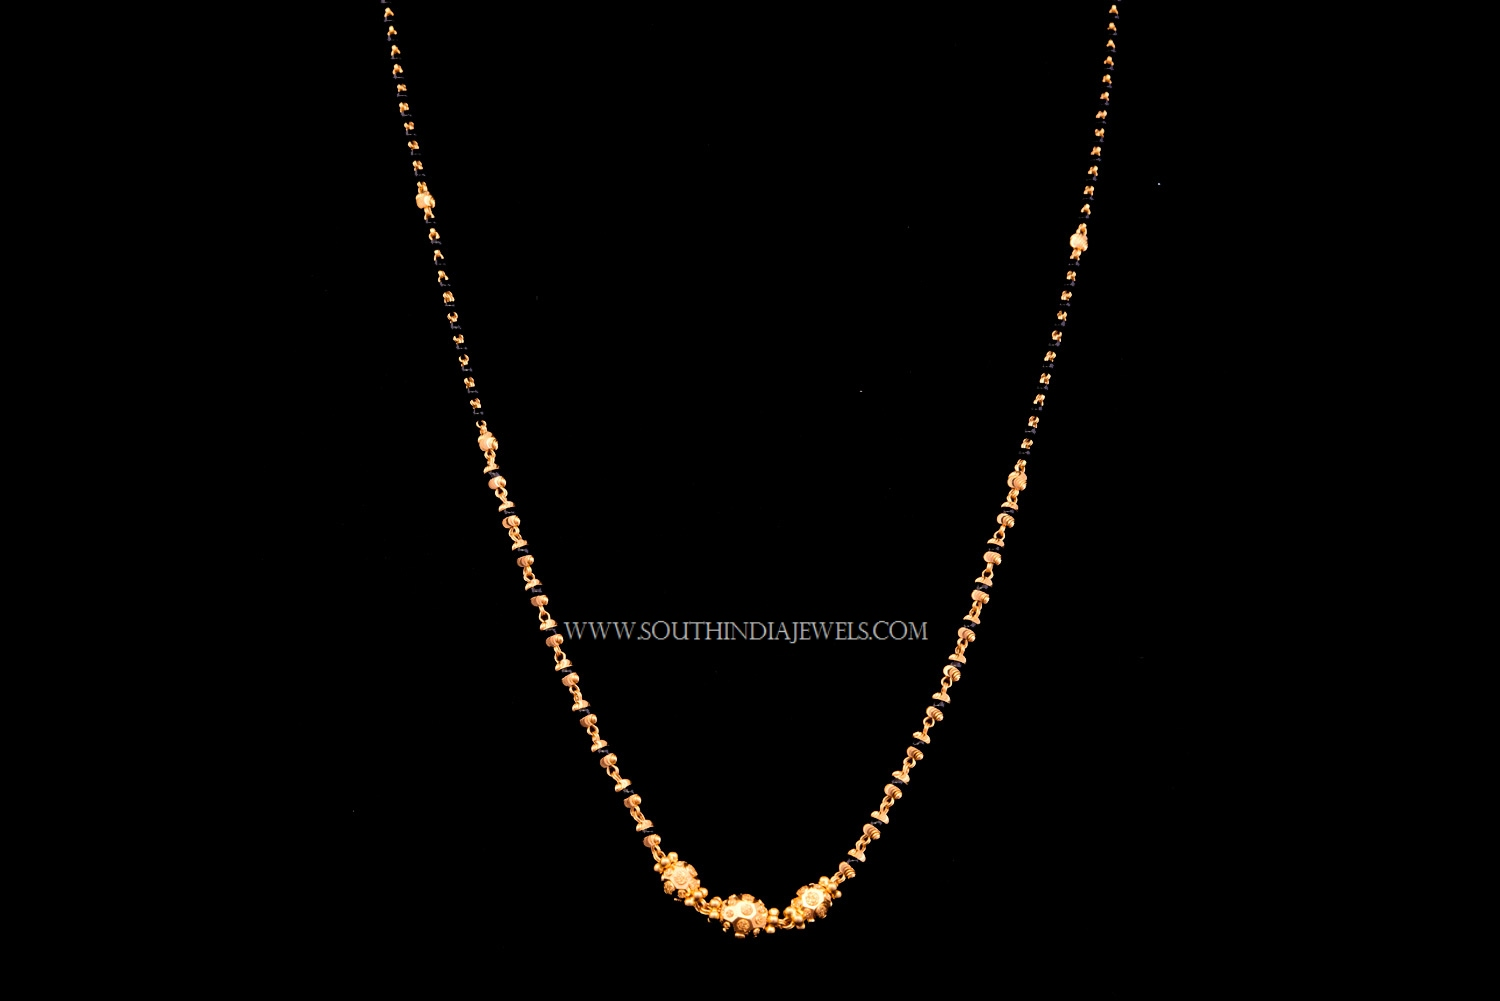 Simple 22K gold Chain Necklace ~ South India Jewels